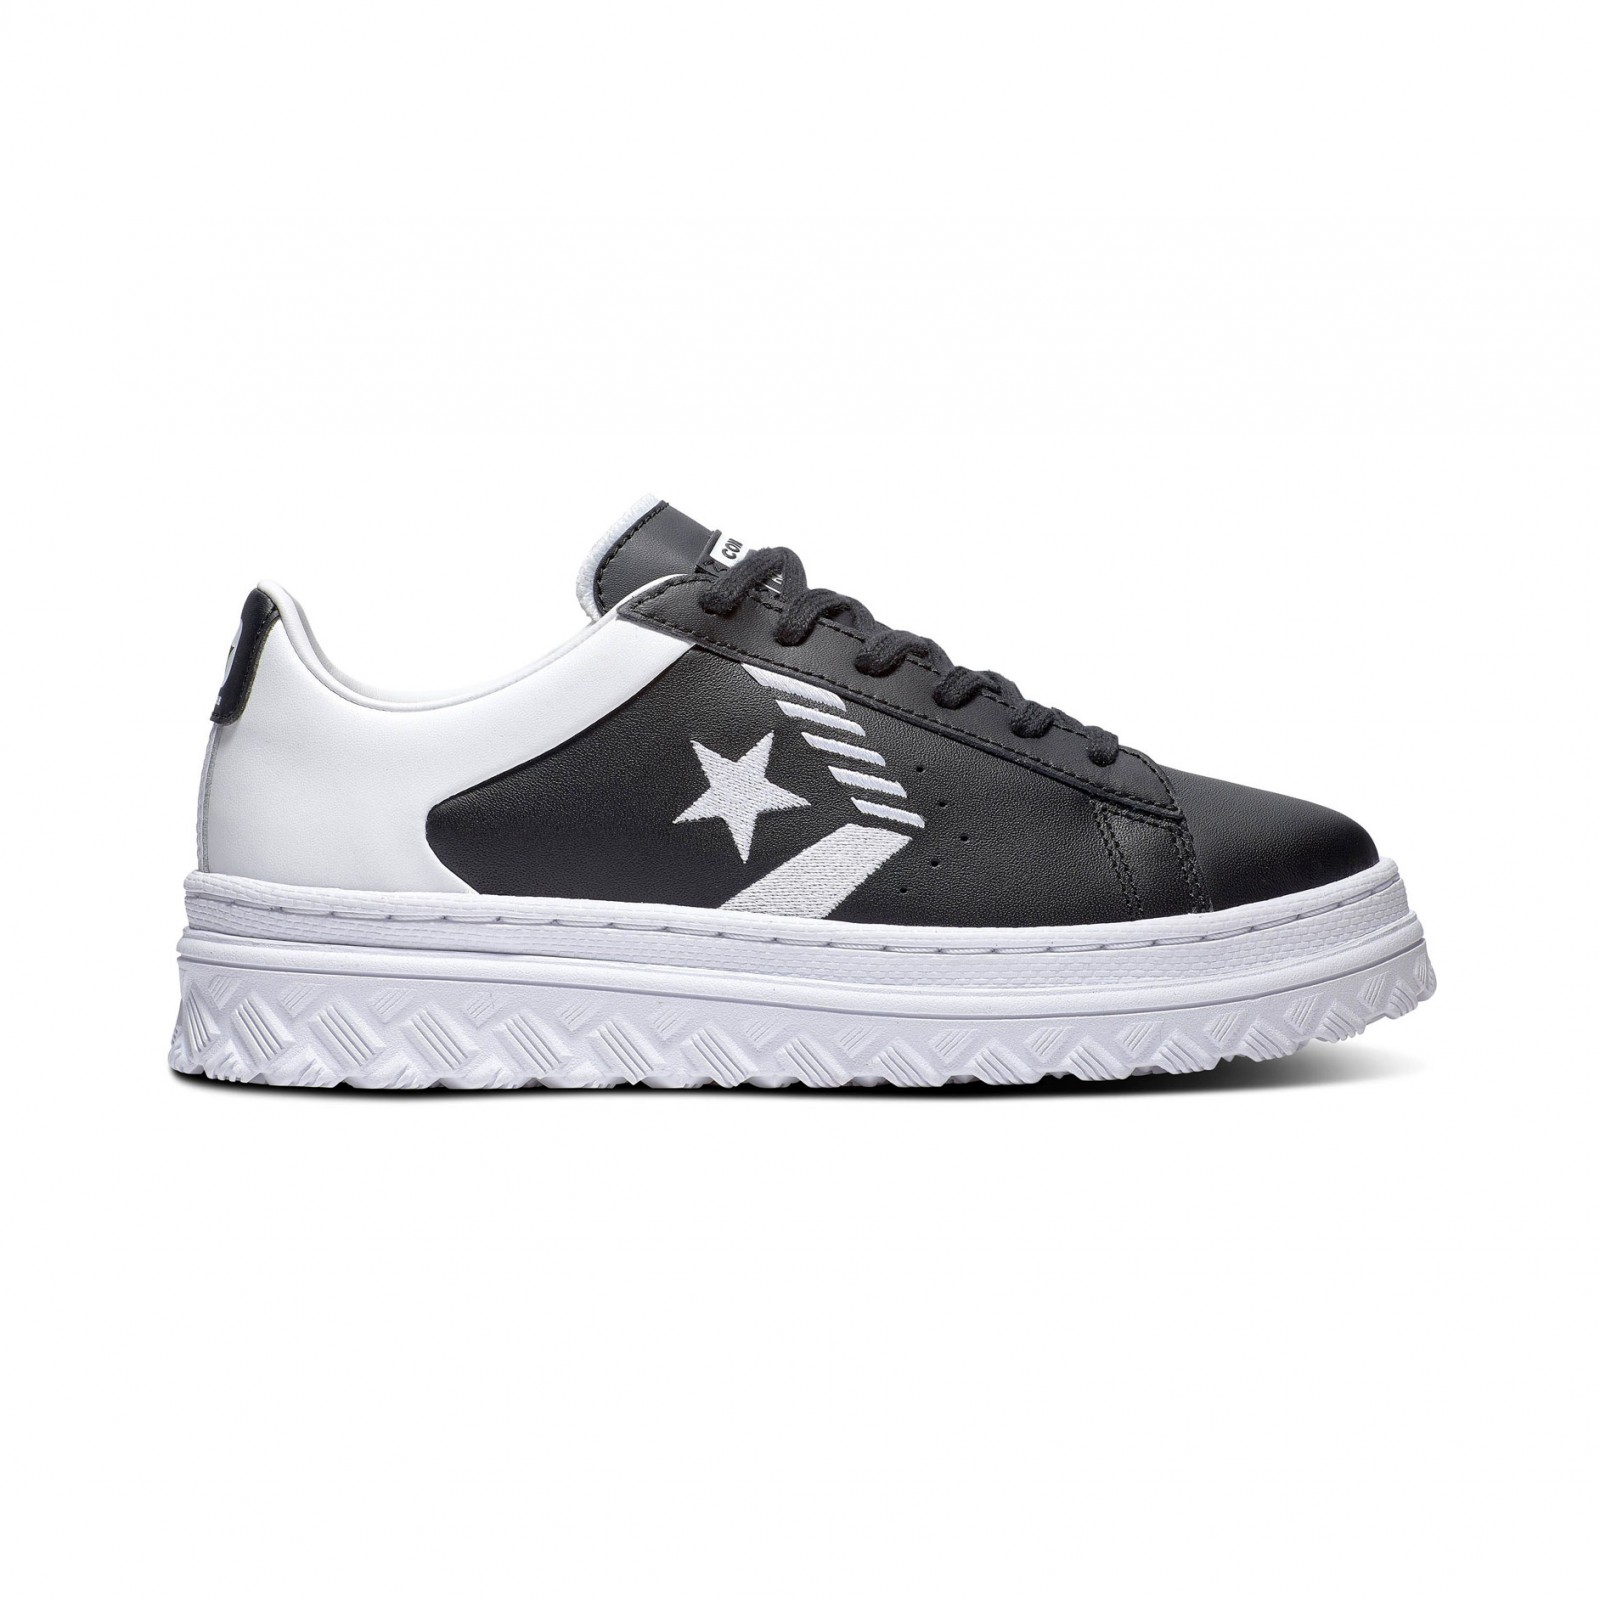 CONVERSE Pro Leather Hacked Black